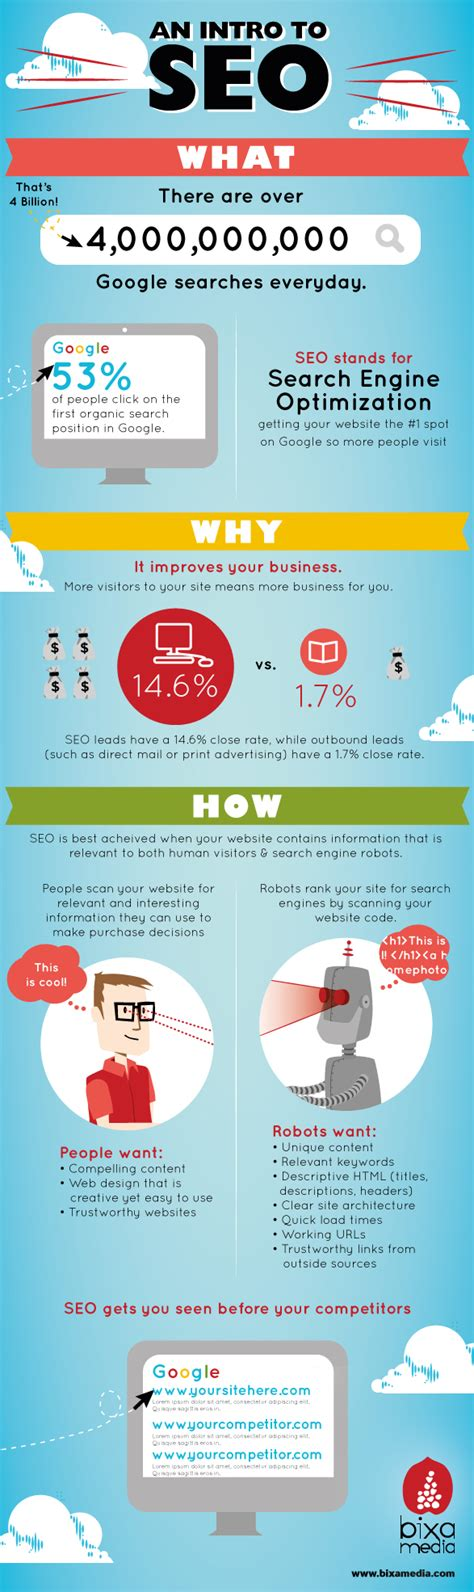 a simple intro to search engine optimization infographic